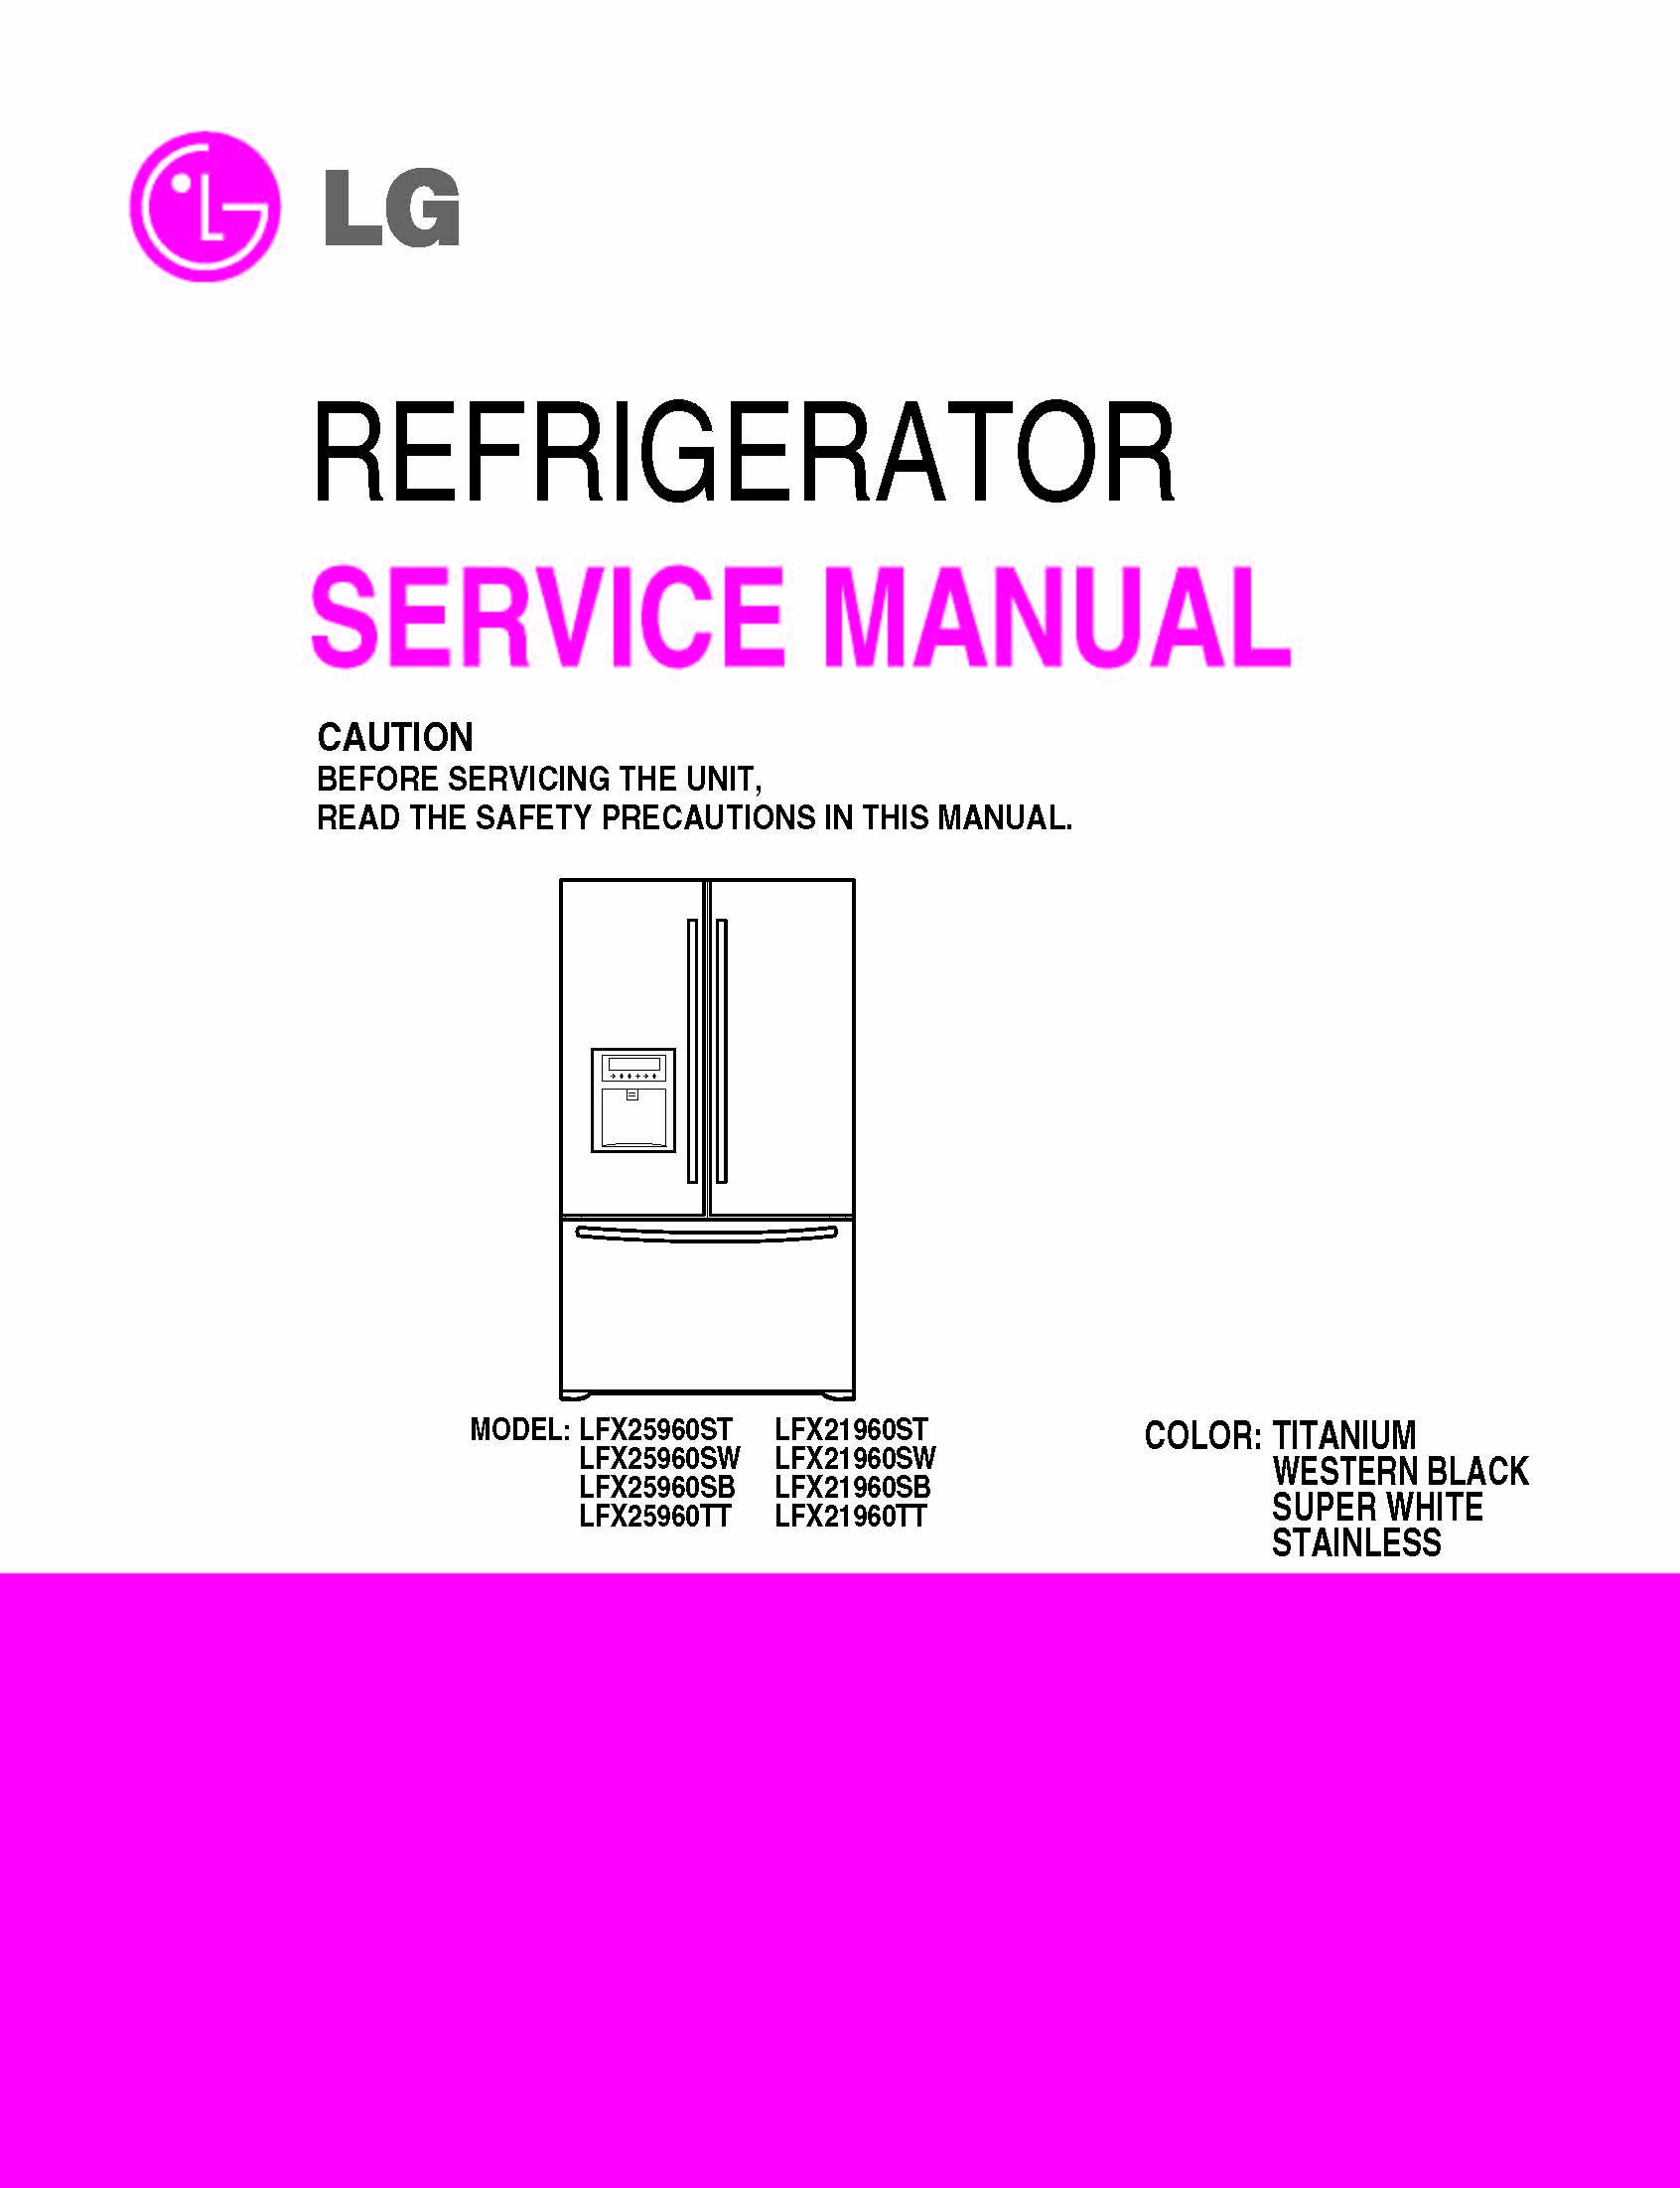 lg lfx25960st and more model s service manual lg 0912345259602 rh amazon com lg refrigerator lfx25960st repair manual LG LFX25960ST Compressor